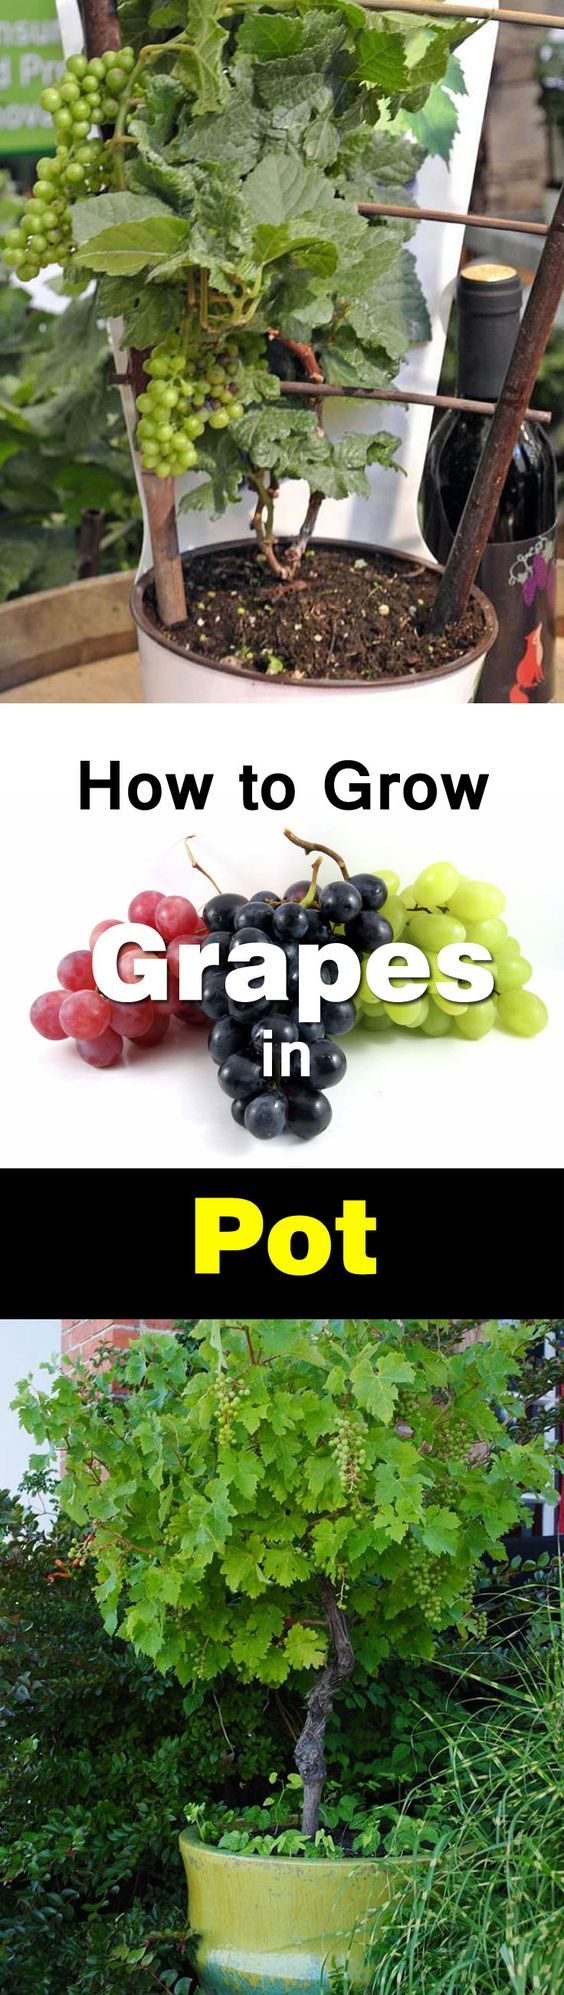 You don't need a big vineyard to grow grapes, you can do this even on your balcony in a pot. Growing grapes in containers is not very complicated though it requires slight care and maintenance. Check out!